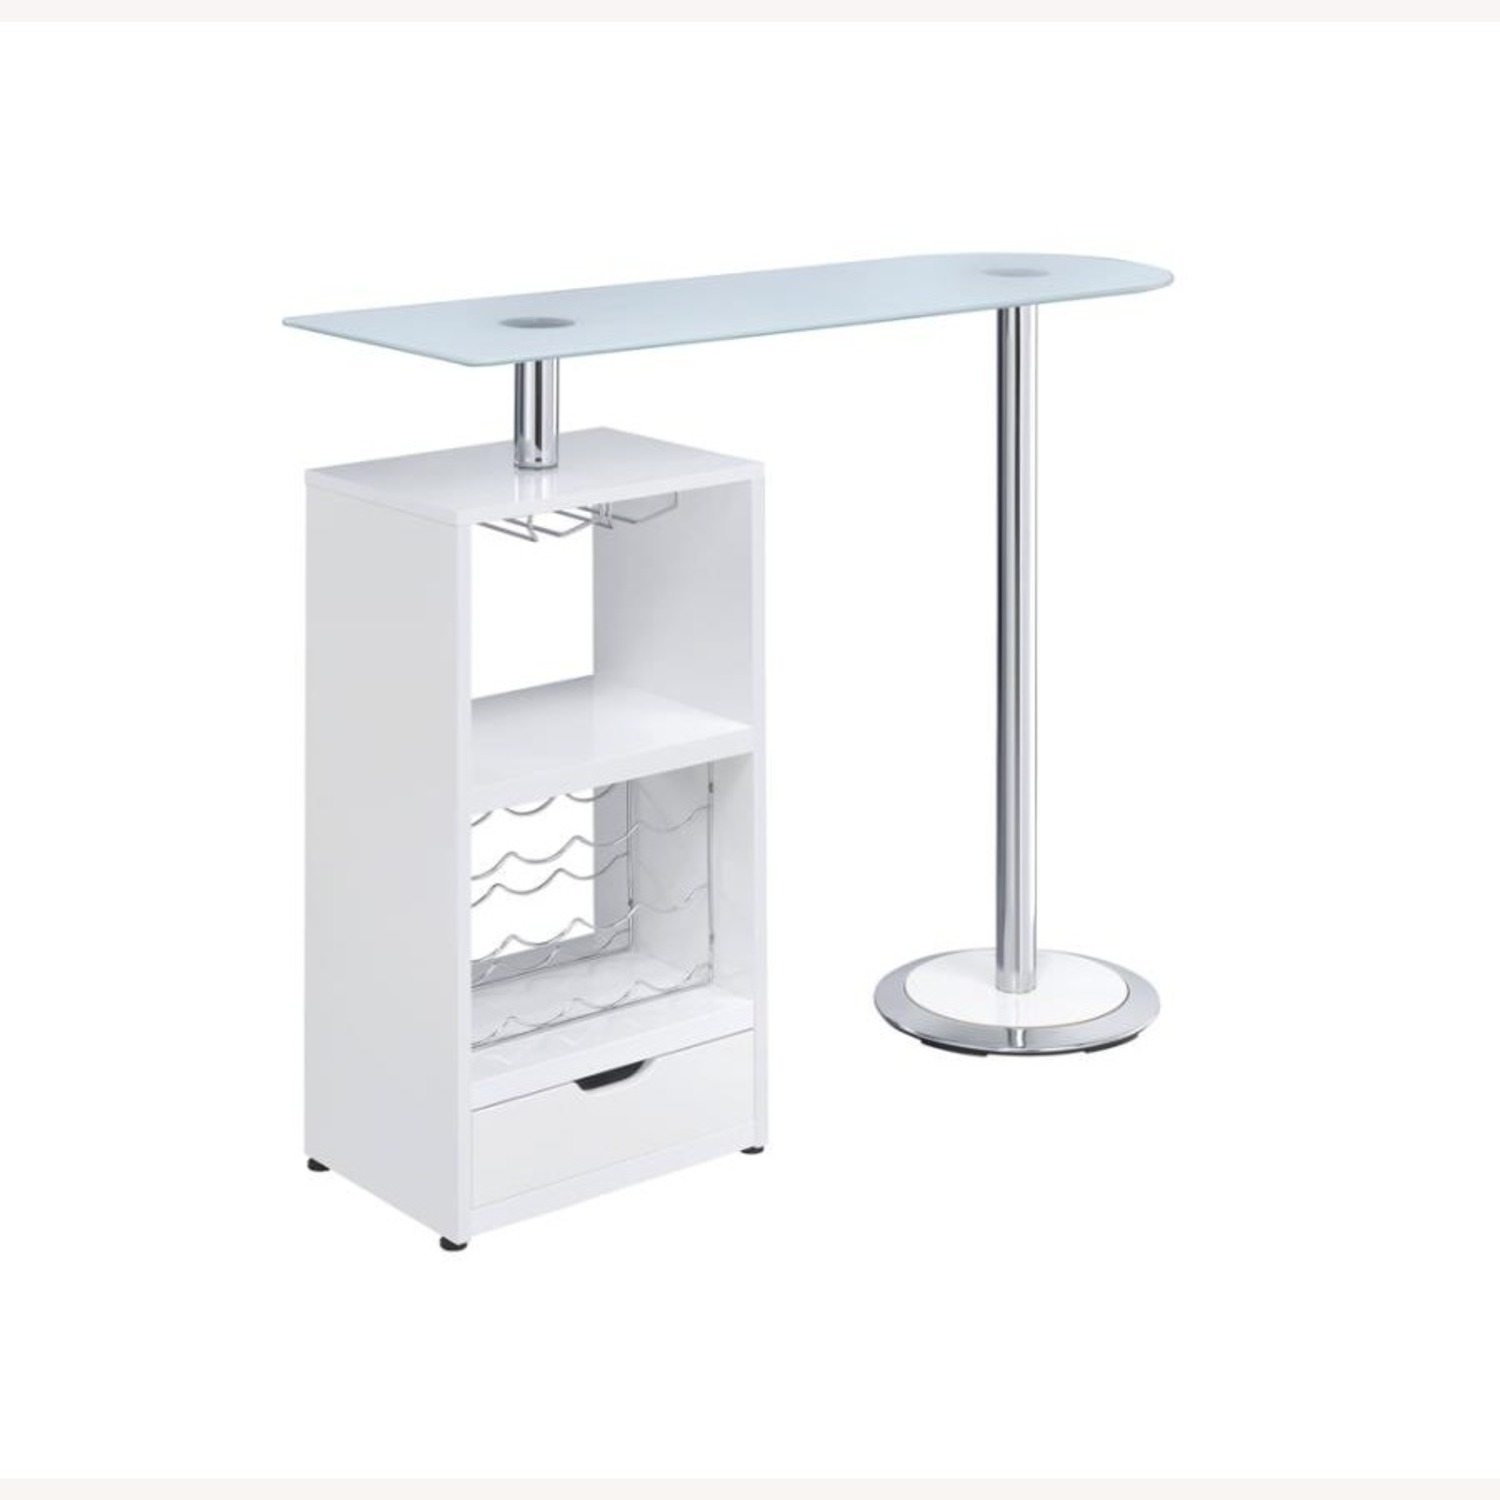 Bar Table In High Gloss White Lacquer Finish - image-0